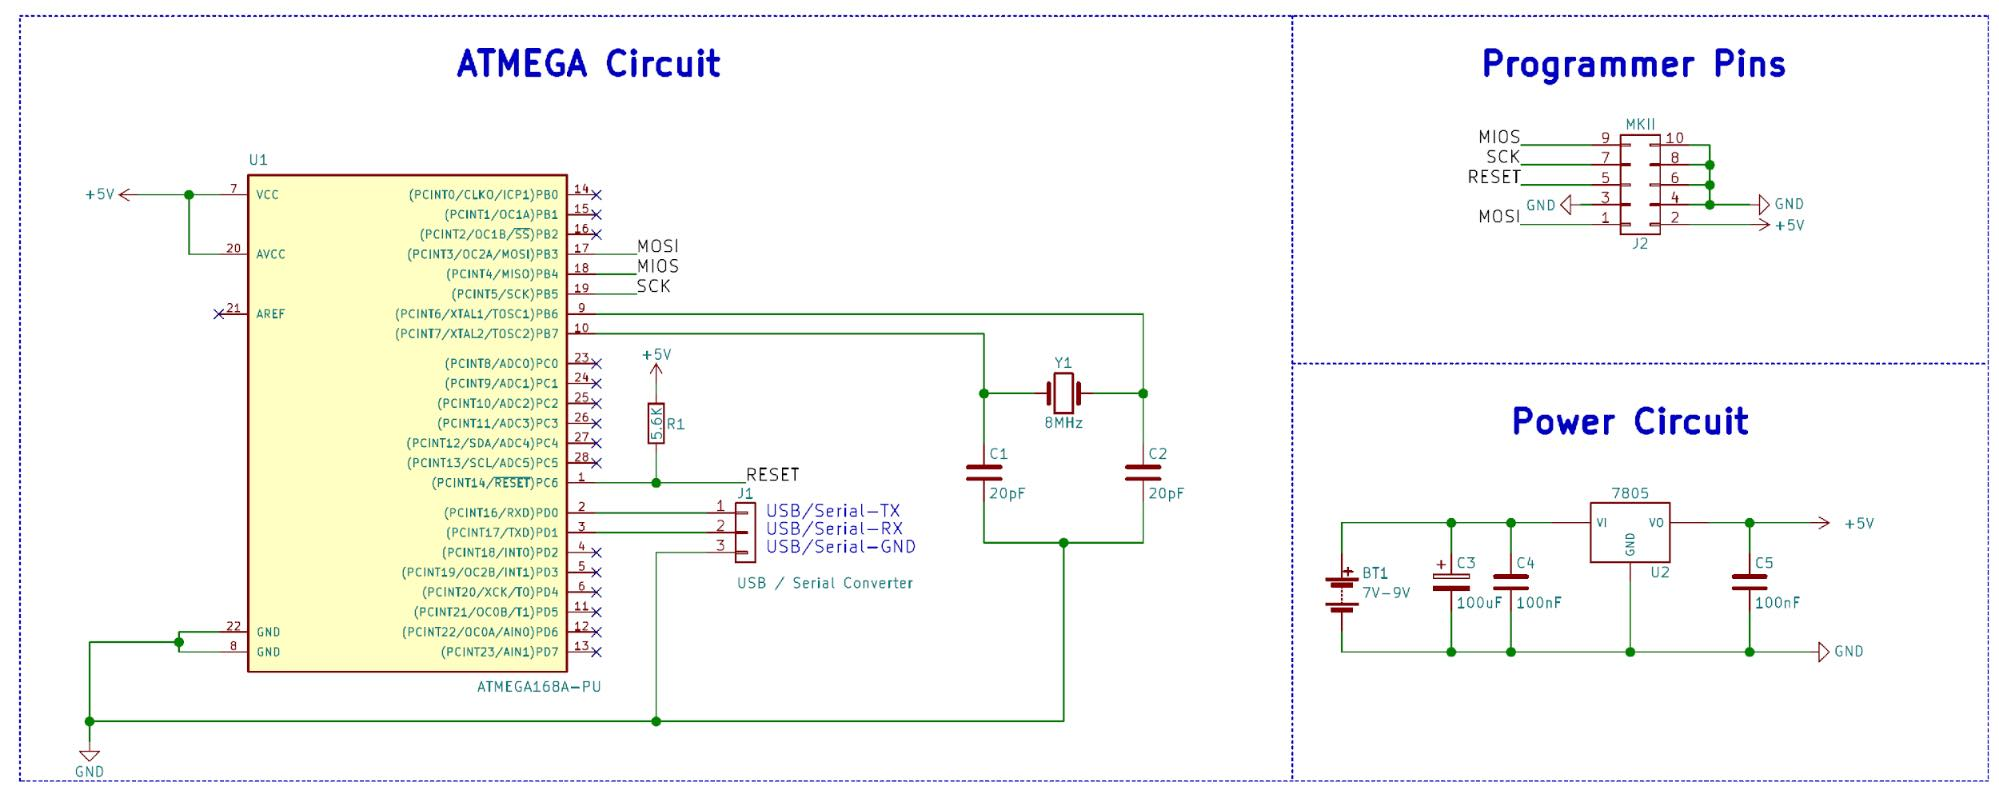 Communicating With An Atmega168 8 Bit Avr Microcontroller Uart Block Diagram Custom Maker Pro